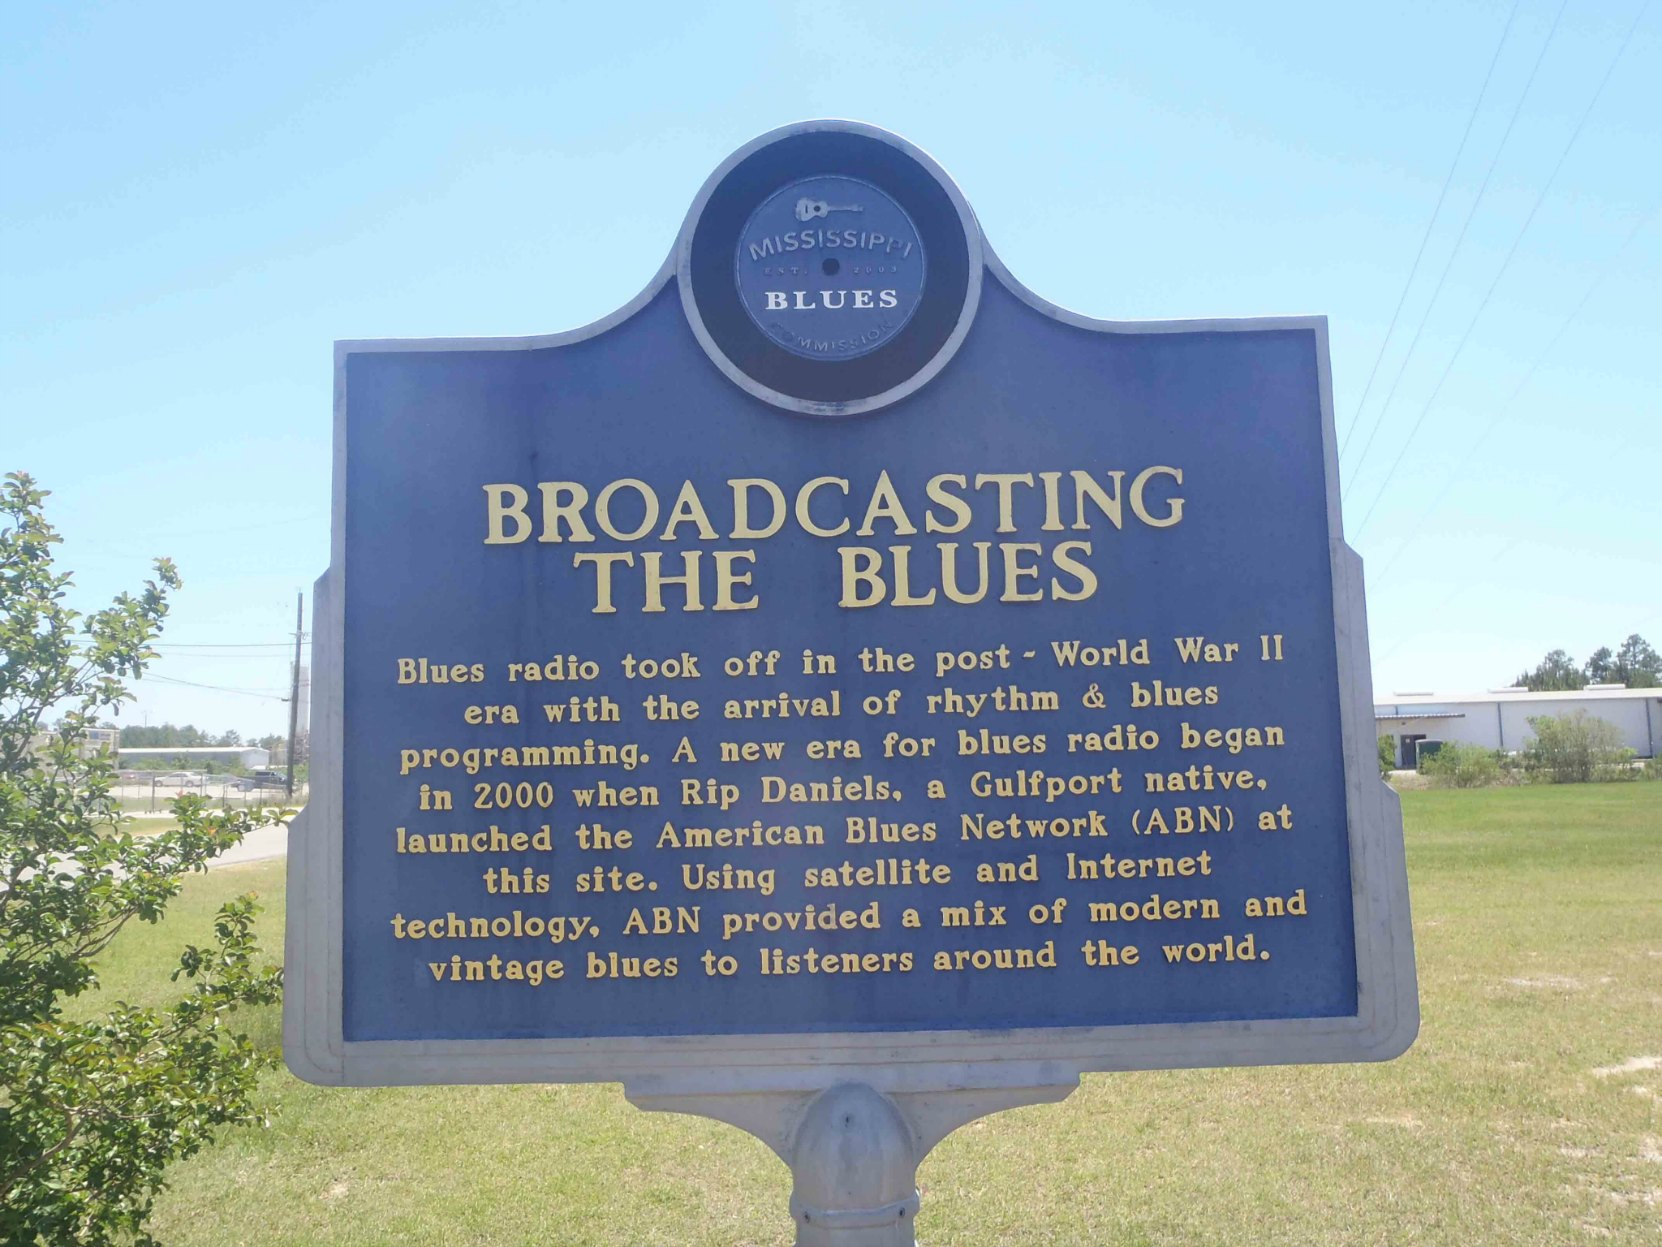 Mississippi Blues Trail marker for Broadcasting The Blues, Gulfport, Mississippi.